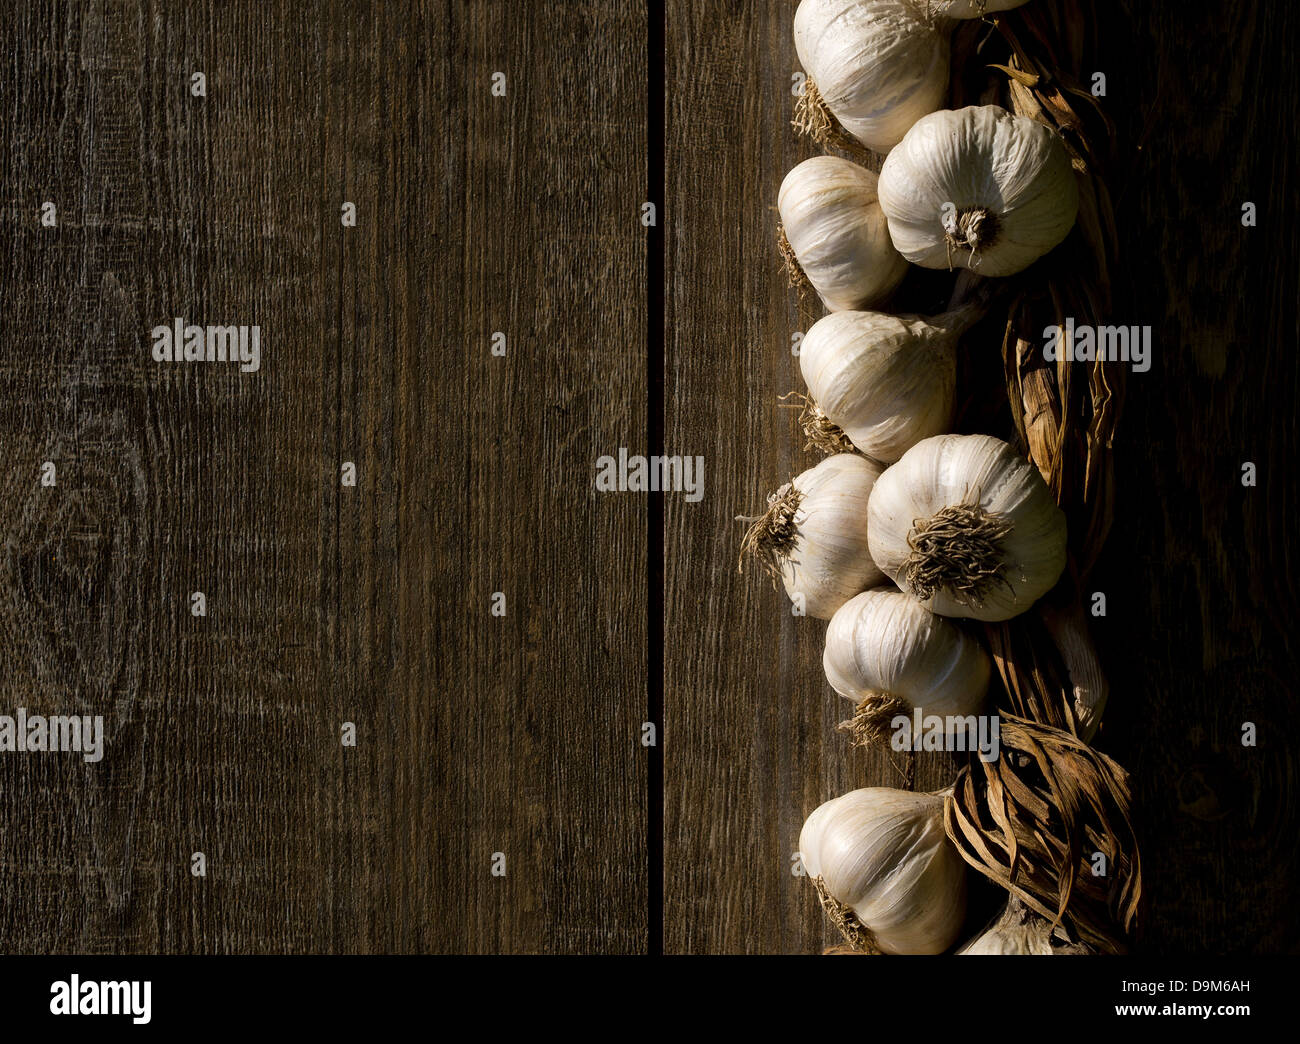 Bunch of garlic on a wooden table. - Stock Image